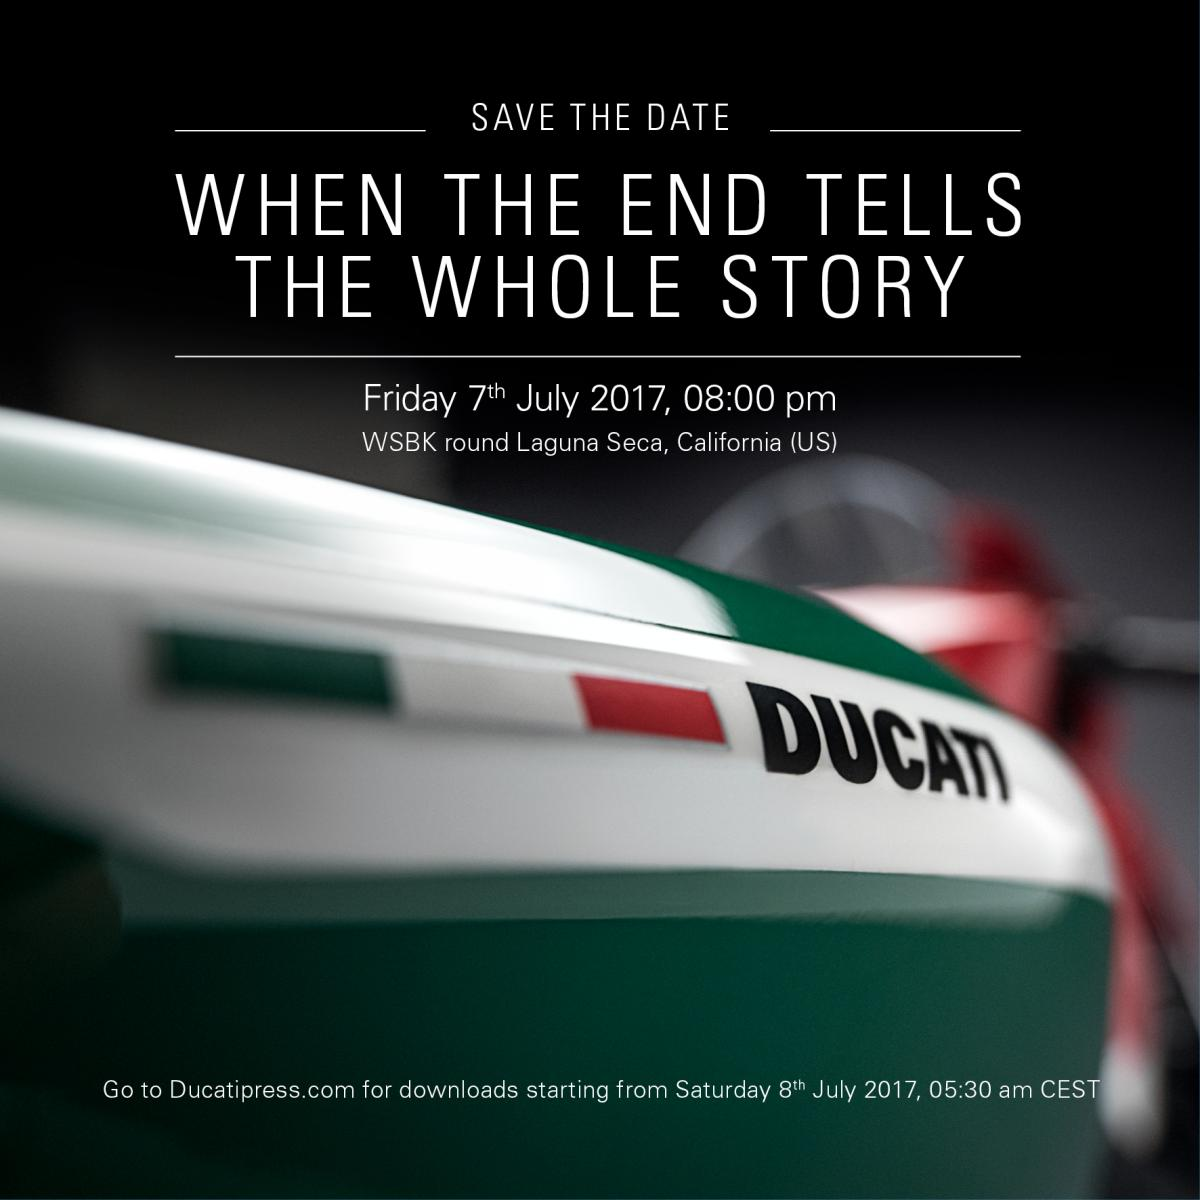 This just in from Ducati